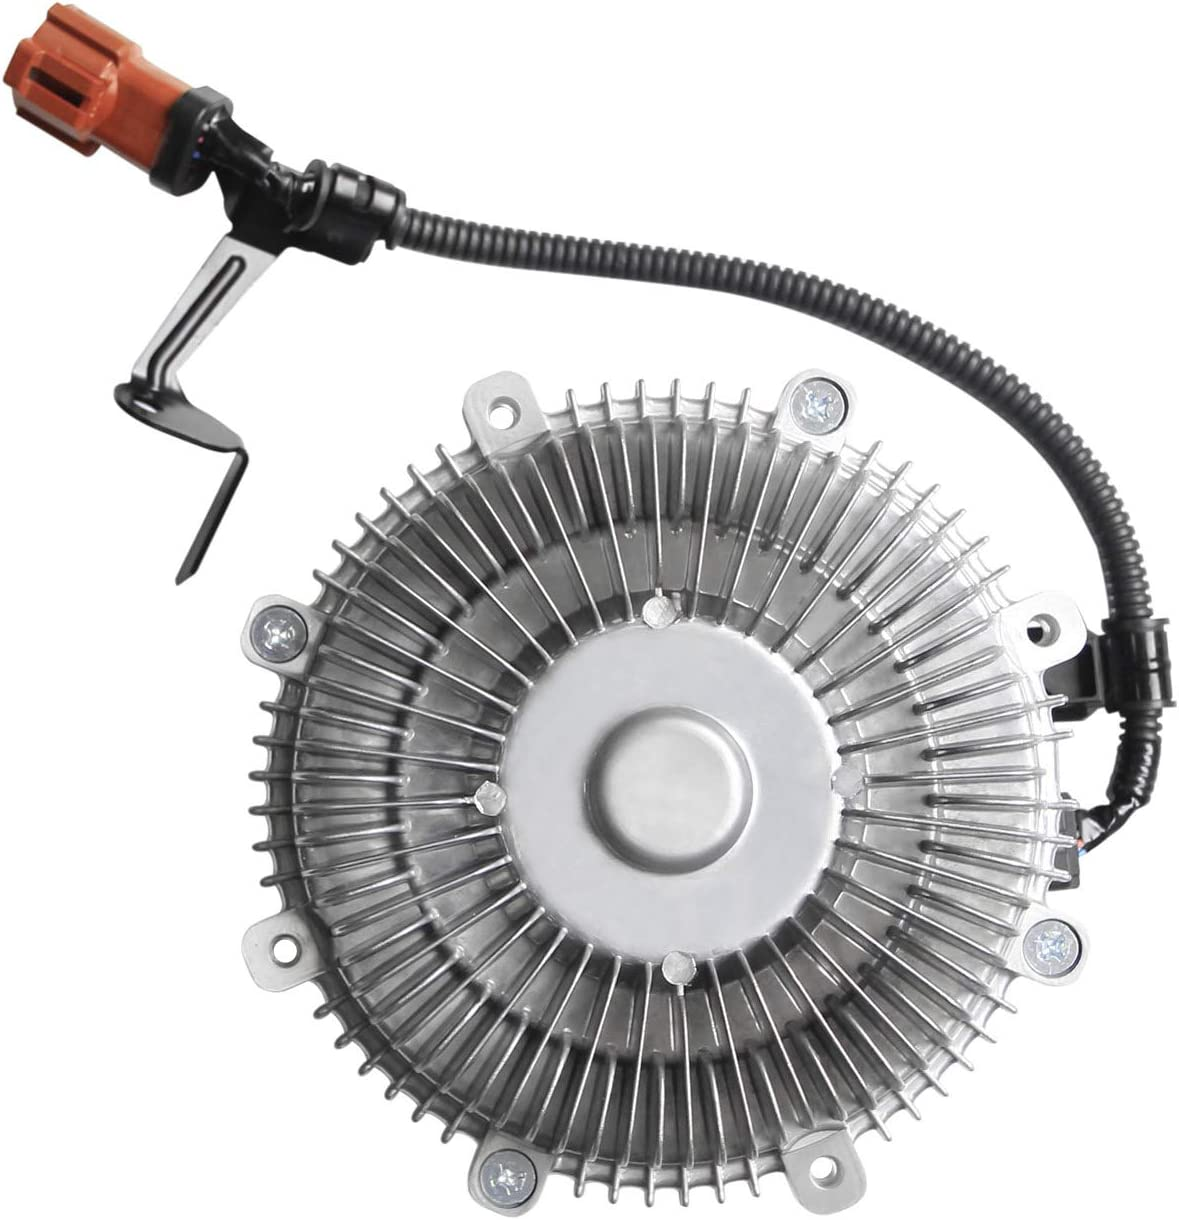 MYSMOT Engine Cooling Fan Clutch For 2007-2008 Ford Expedition/Ford F-150 / Lincoln Mark LT/Lincoln Navigator (V8 4.6L 5.4L) 3264 7L1Z8A616A 7L1Z-8A616-A